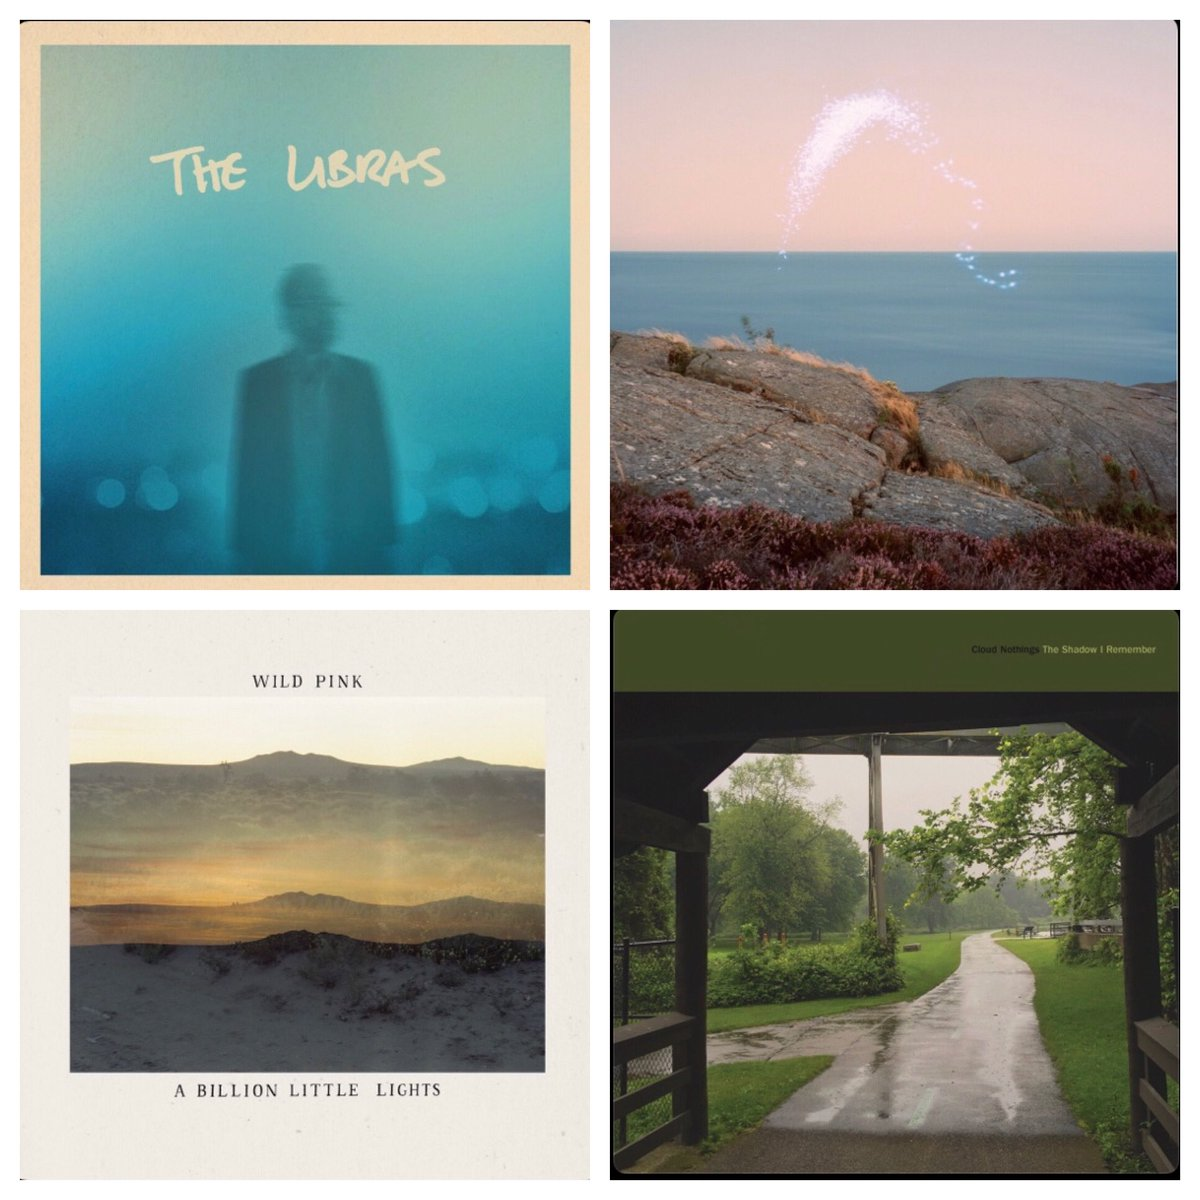 New Music Recommendations The Libras - Faded Cassandra Jenkins - An Overview on Phenomenal Nature Wild Pink - A Billion Little Lights Cloud Nothings - Oslo 2021 continues to deliver the goods